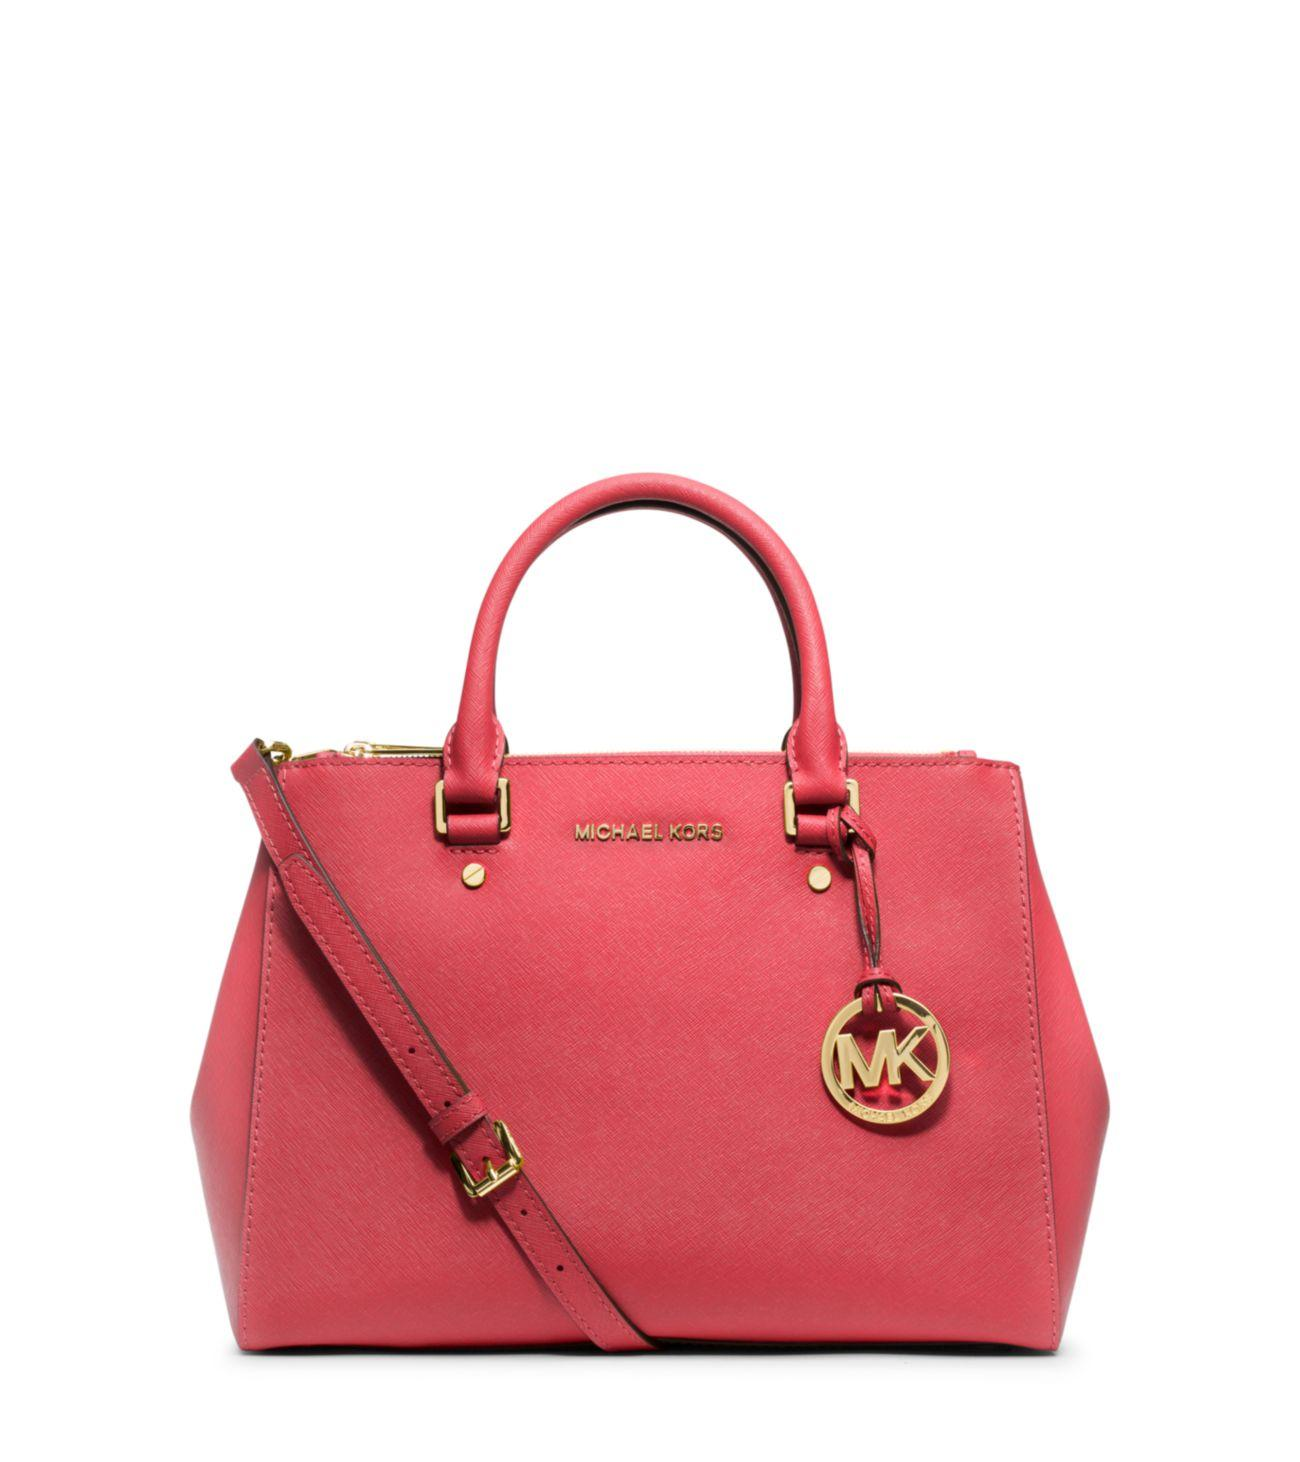 17a96d4734e4ee Michael Kors Sutton Medium Saffiano Leather Satchel in Red - Lyst